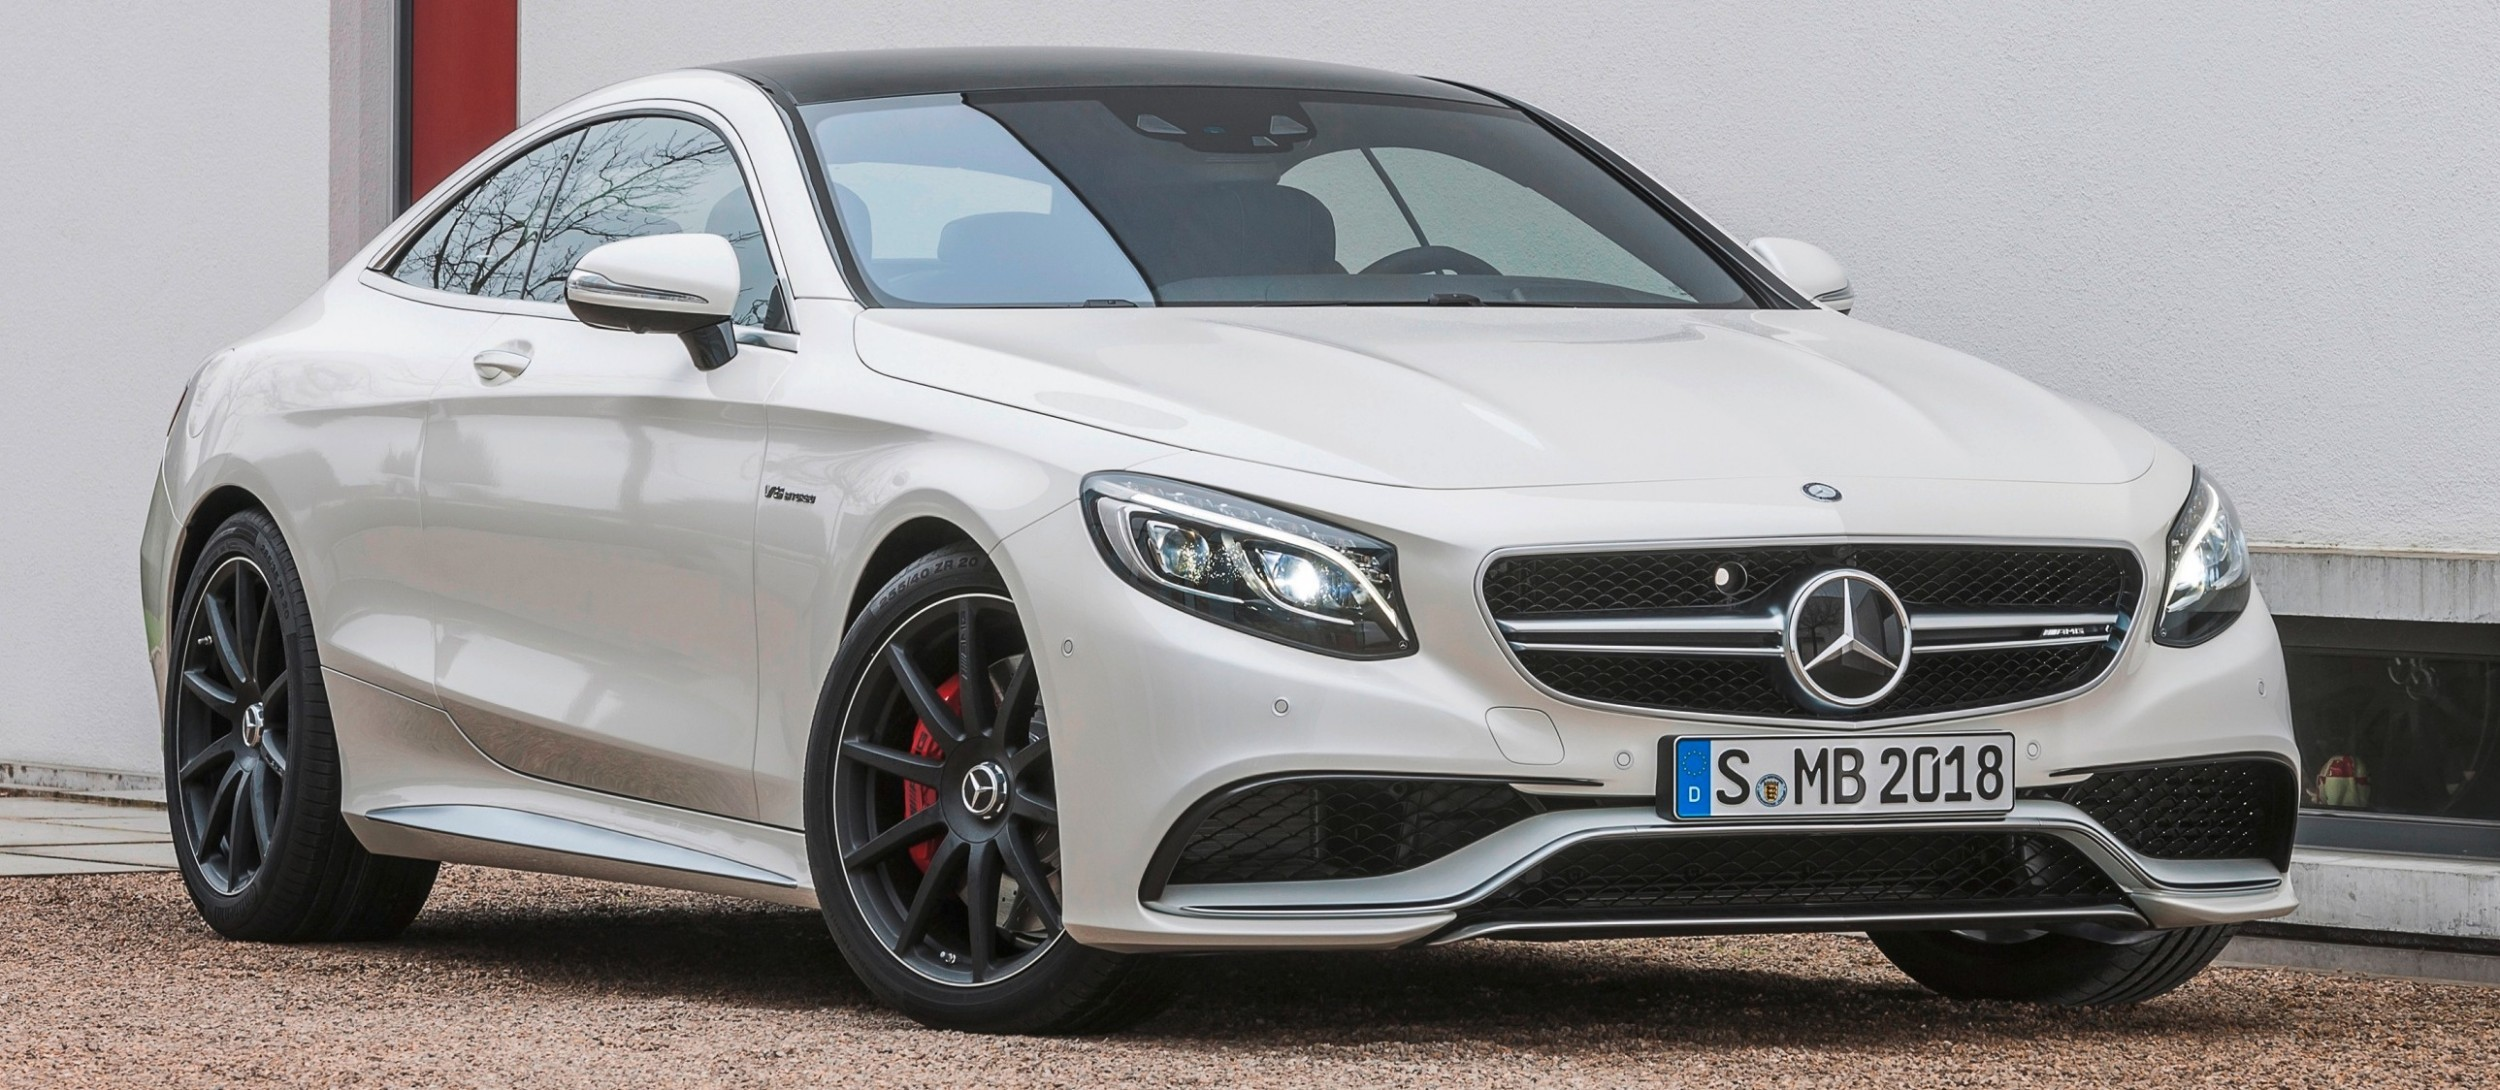 White Knights Of The Star Table 585hp S63 Amg Coupe Latest Mercedes